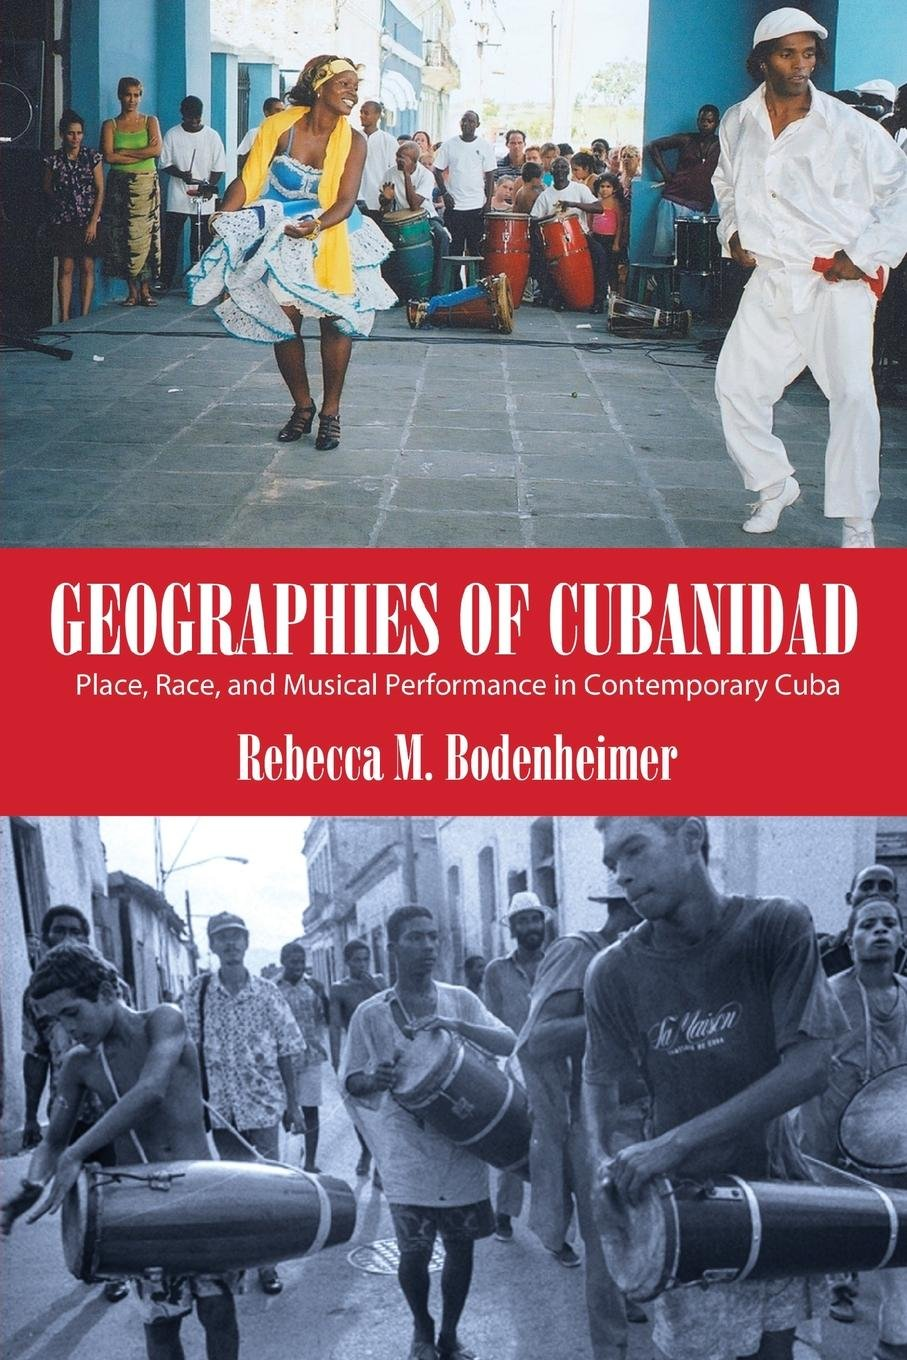 Geographies of Cubanidad: Place, Race, and Musical Performance in  Contemporary Cuba (Caribbean Studies Series): Rebecca M. Bodenheimer:  9781496813152: ...